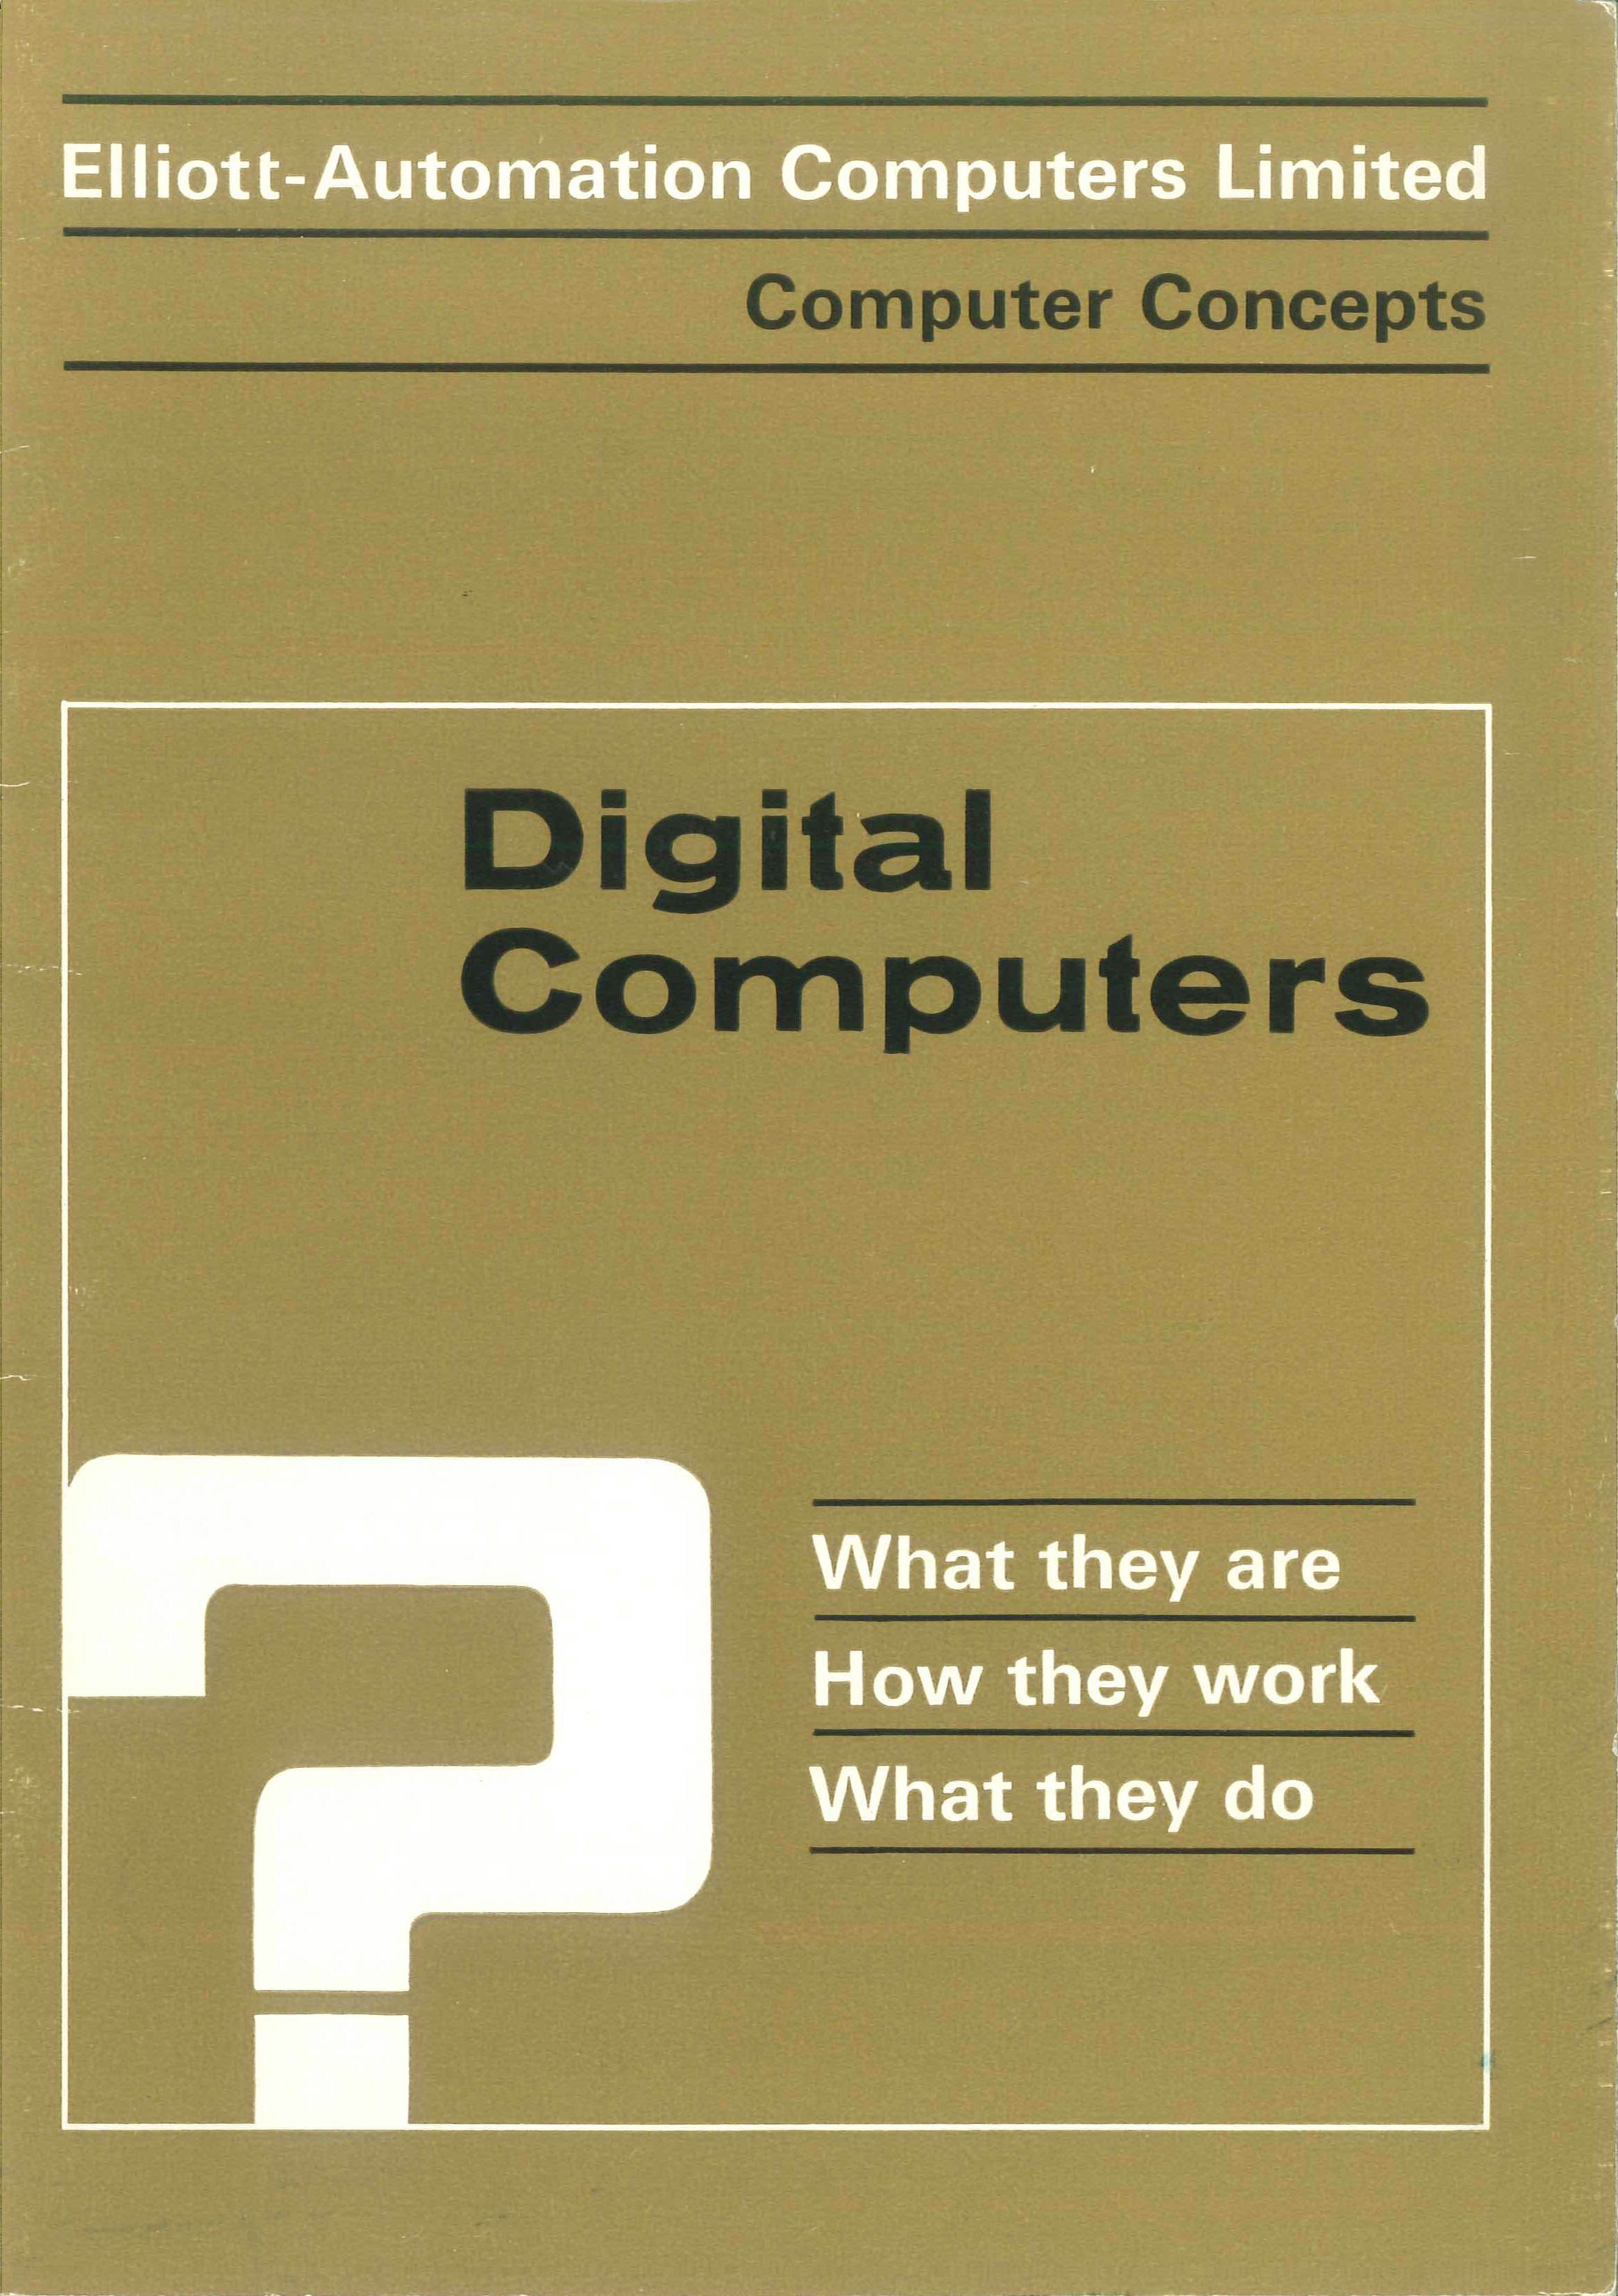 Digital Computers